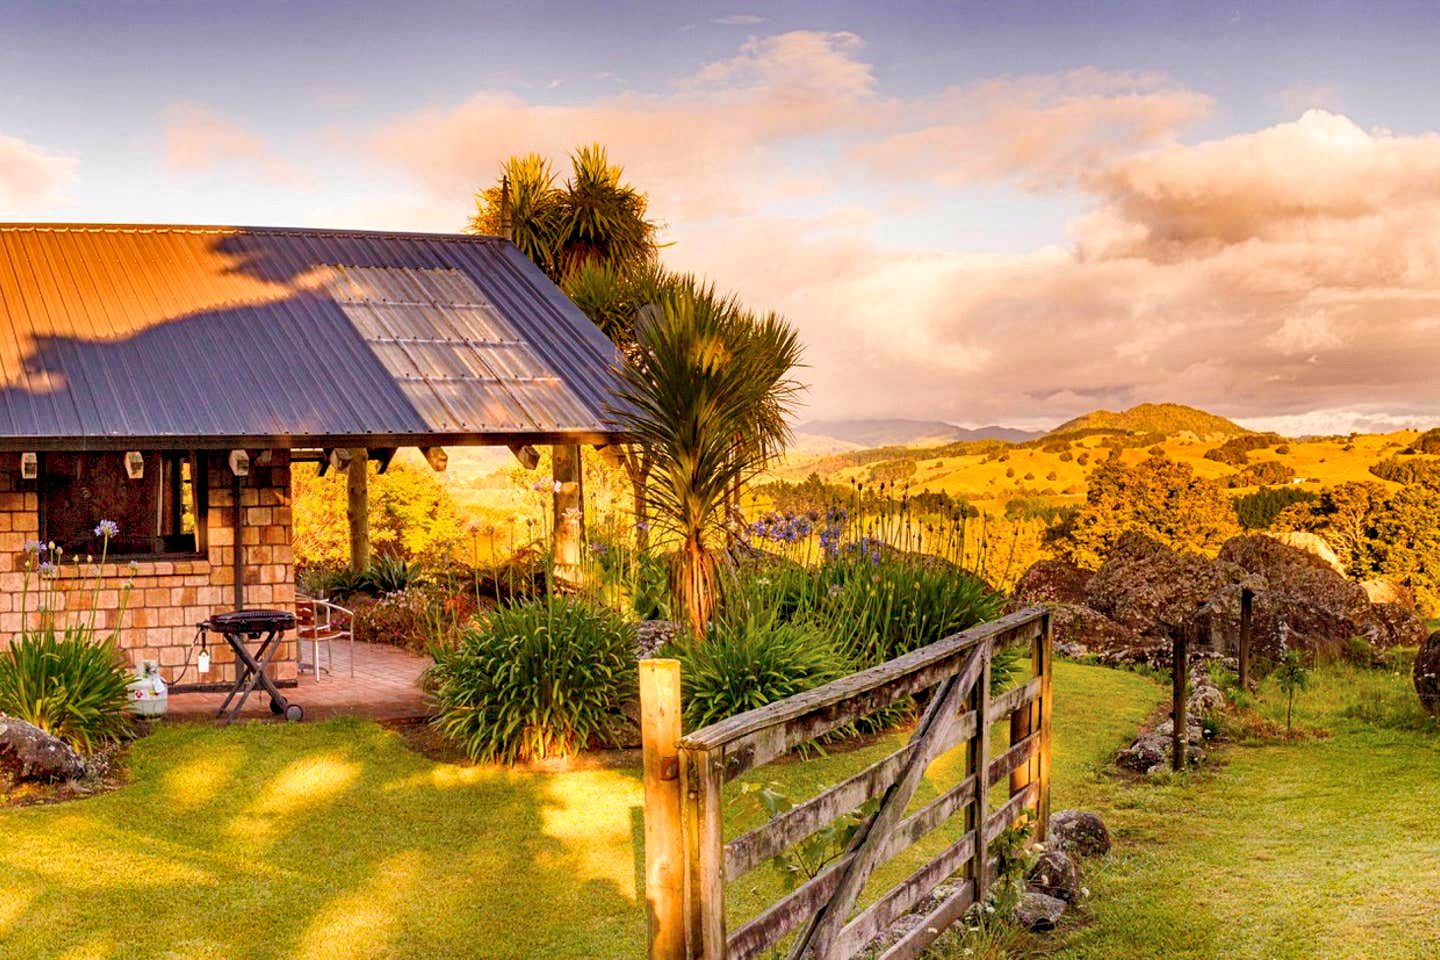 This luxury accommodation near Whangarei is the perfect North Island weekend getaway. The views are simply astounding!